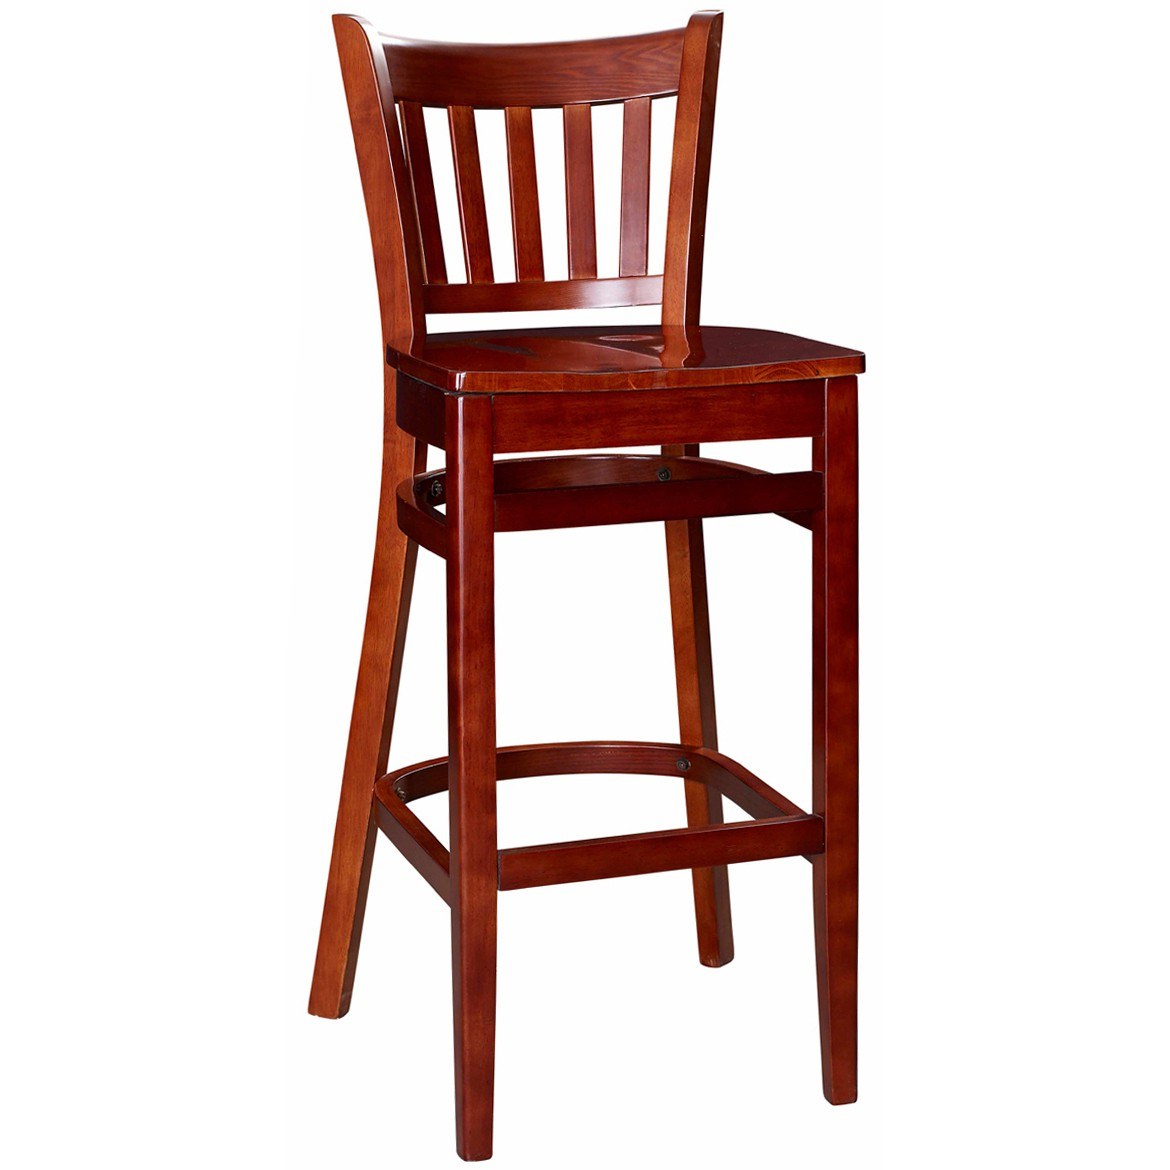 Wooden Furniture Stools ~ Vertical slat wood bar stool for sale restaurant barstools